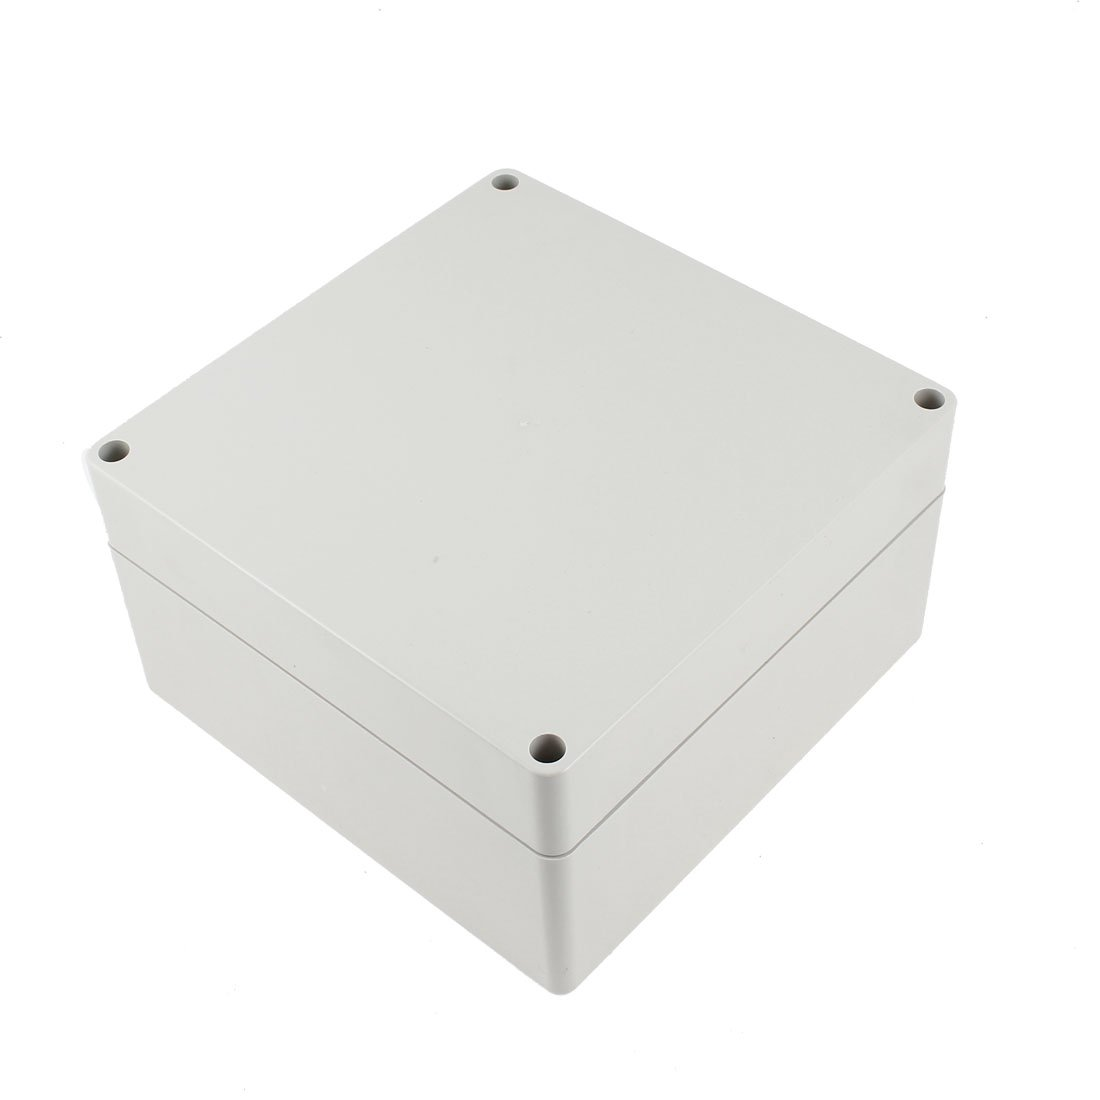 uxcell 6.3'' x 6.3'' x 3.54''(160mm x 160mm x 90mm) ABS Junction Box Universal Project Enclosure